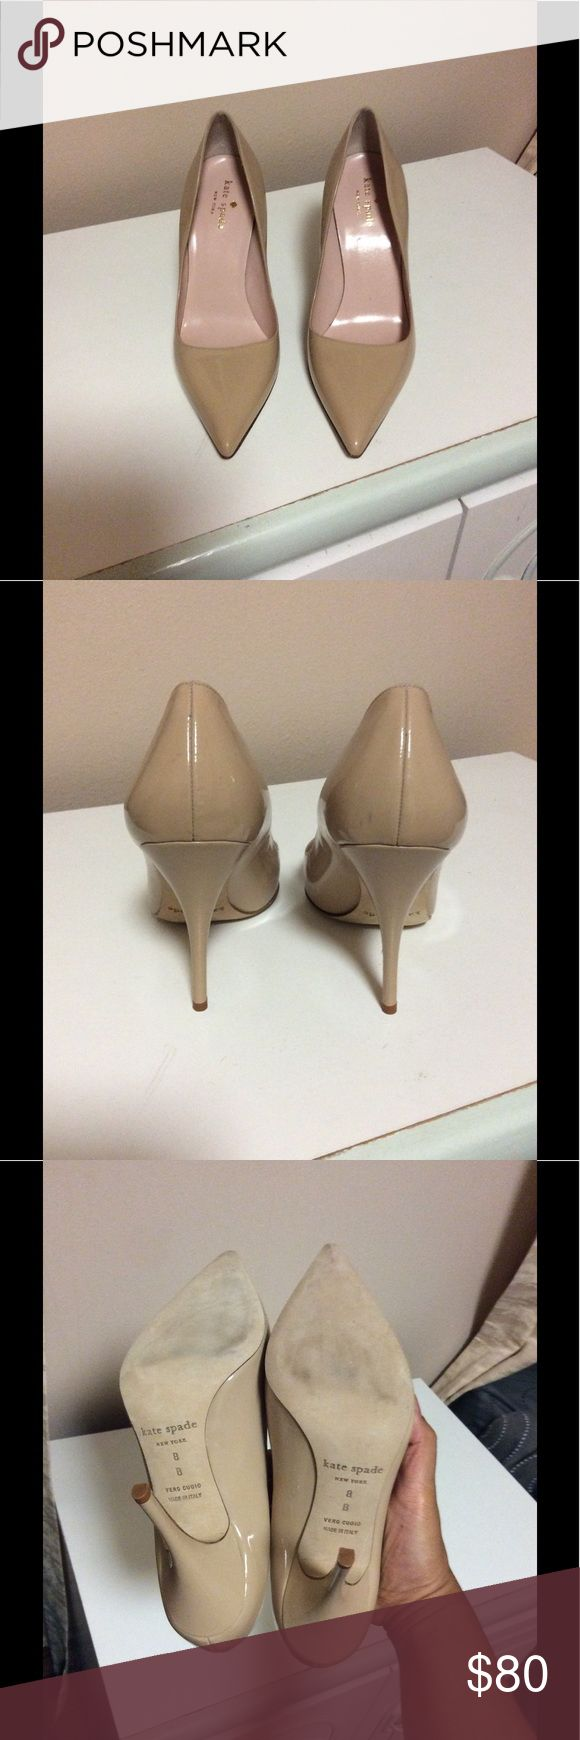 Authentic Kate Spade Licorice Heels Beautiful pair of nude heels in very good condition. 4 inch heel. Please look at pictures 2,4,5 and 6 to see small stains. kate spade Shoes Heels